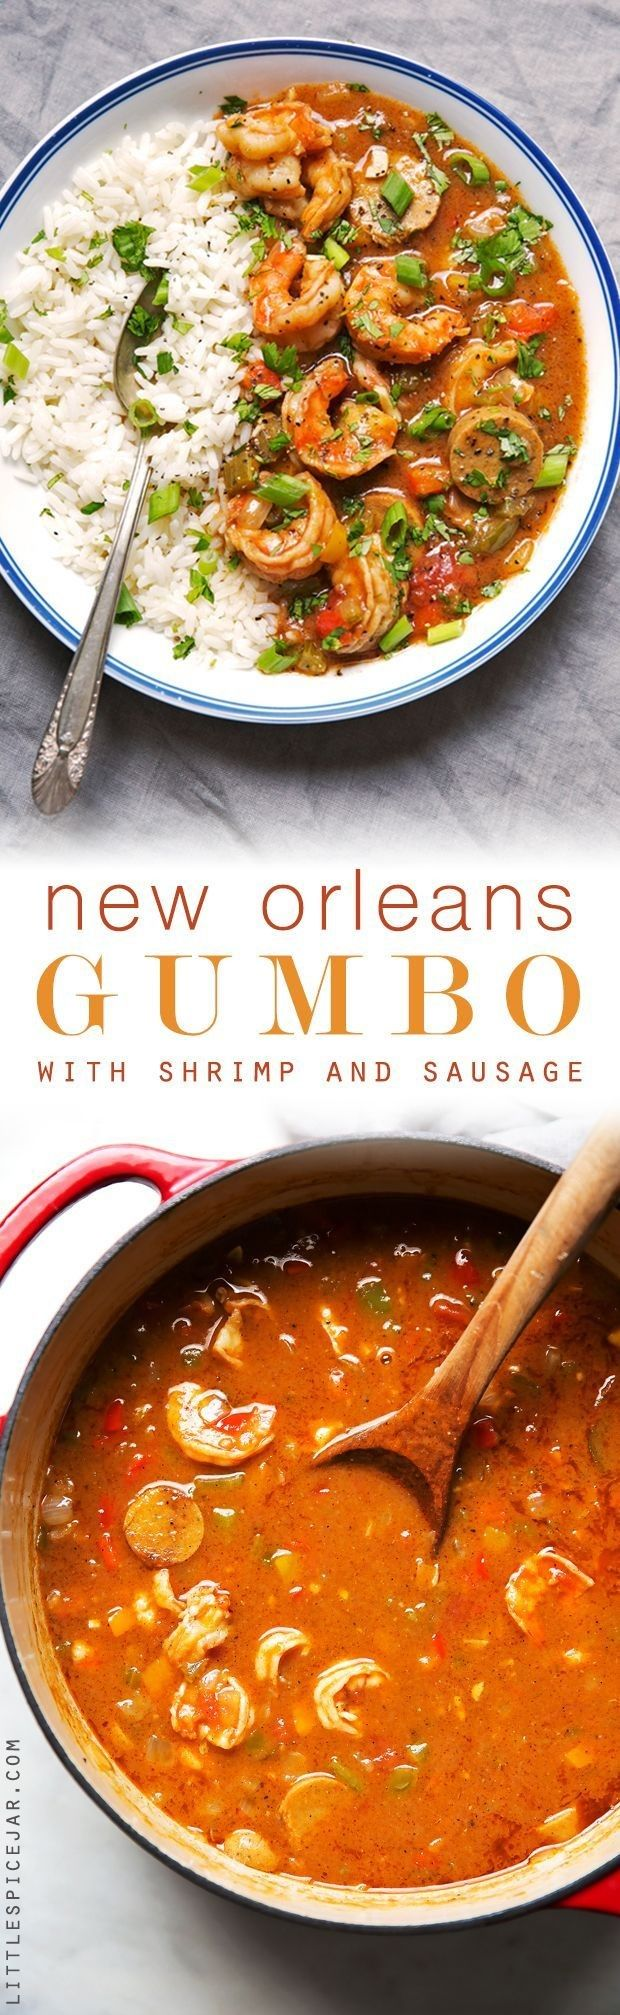 23 Best Seafood Images On Pinterest Fish And Cooking Food Shrimp Roll Bento Isi 10 Fat Burning New Orleans Gumbo With Sausage My Take This Recipe Makes Even The Roux From Scratch Is Absolutely Perfect To